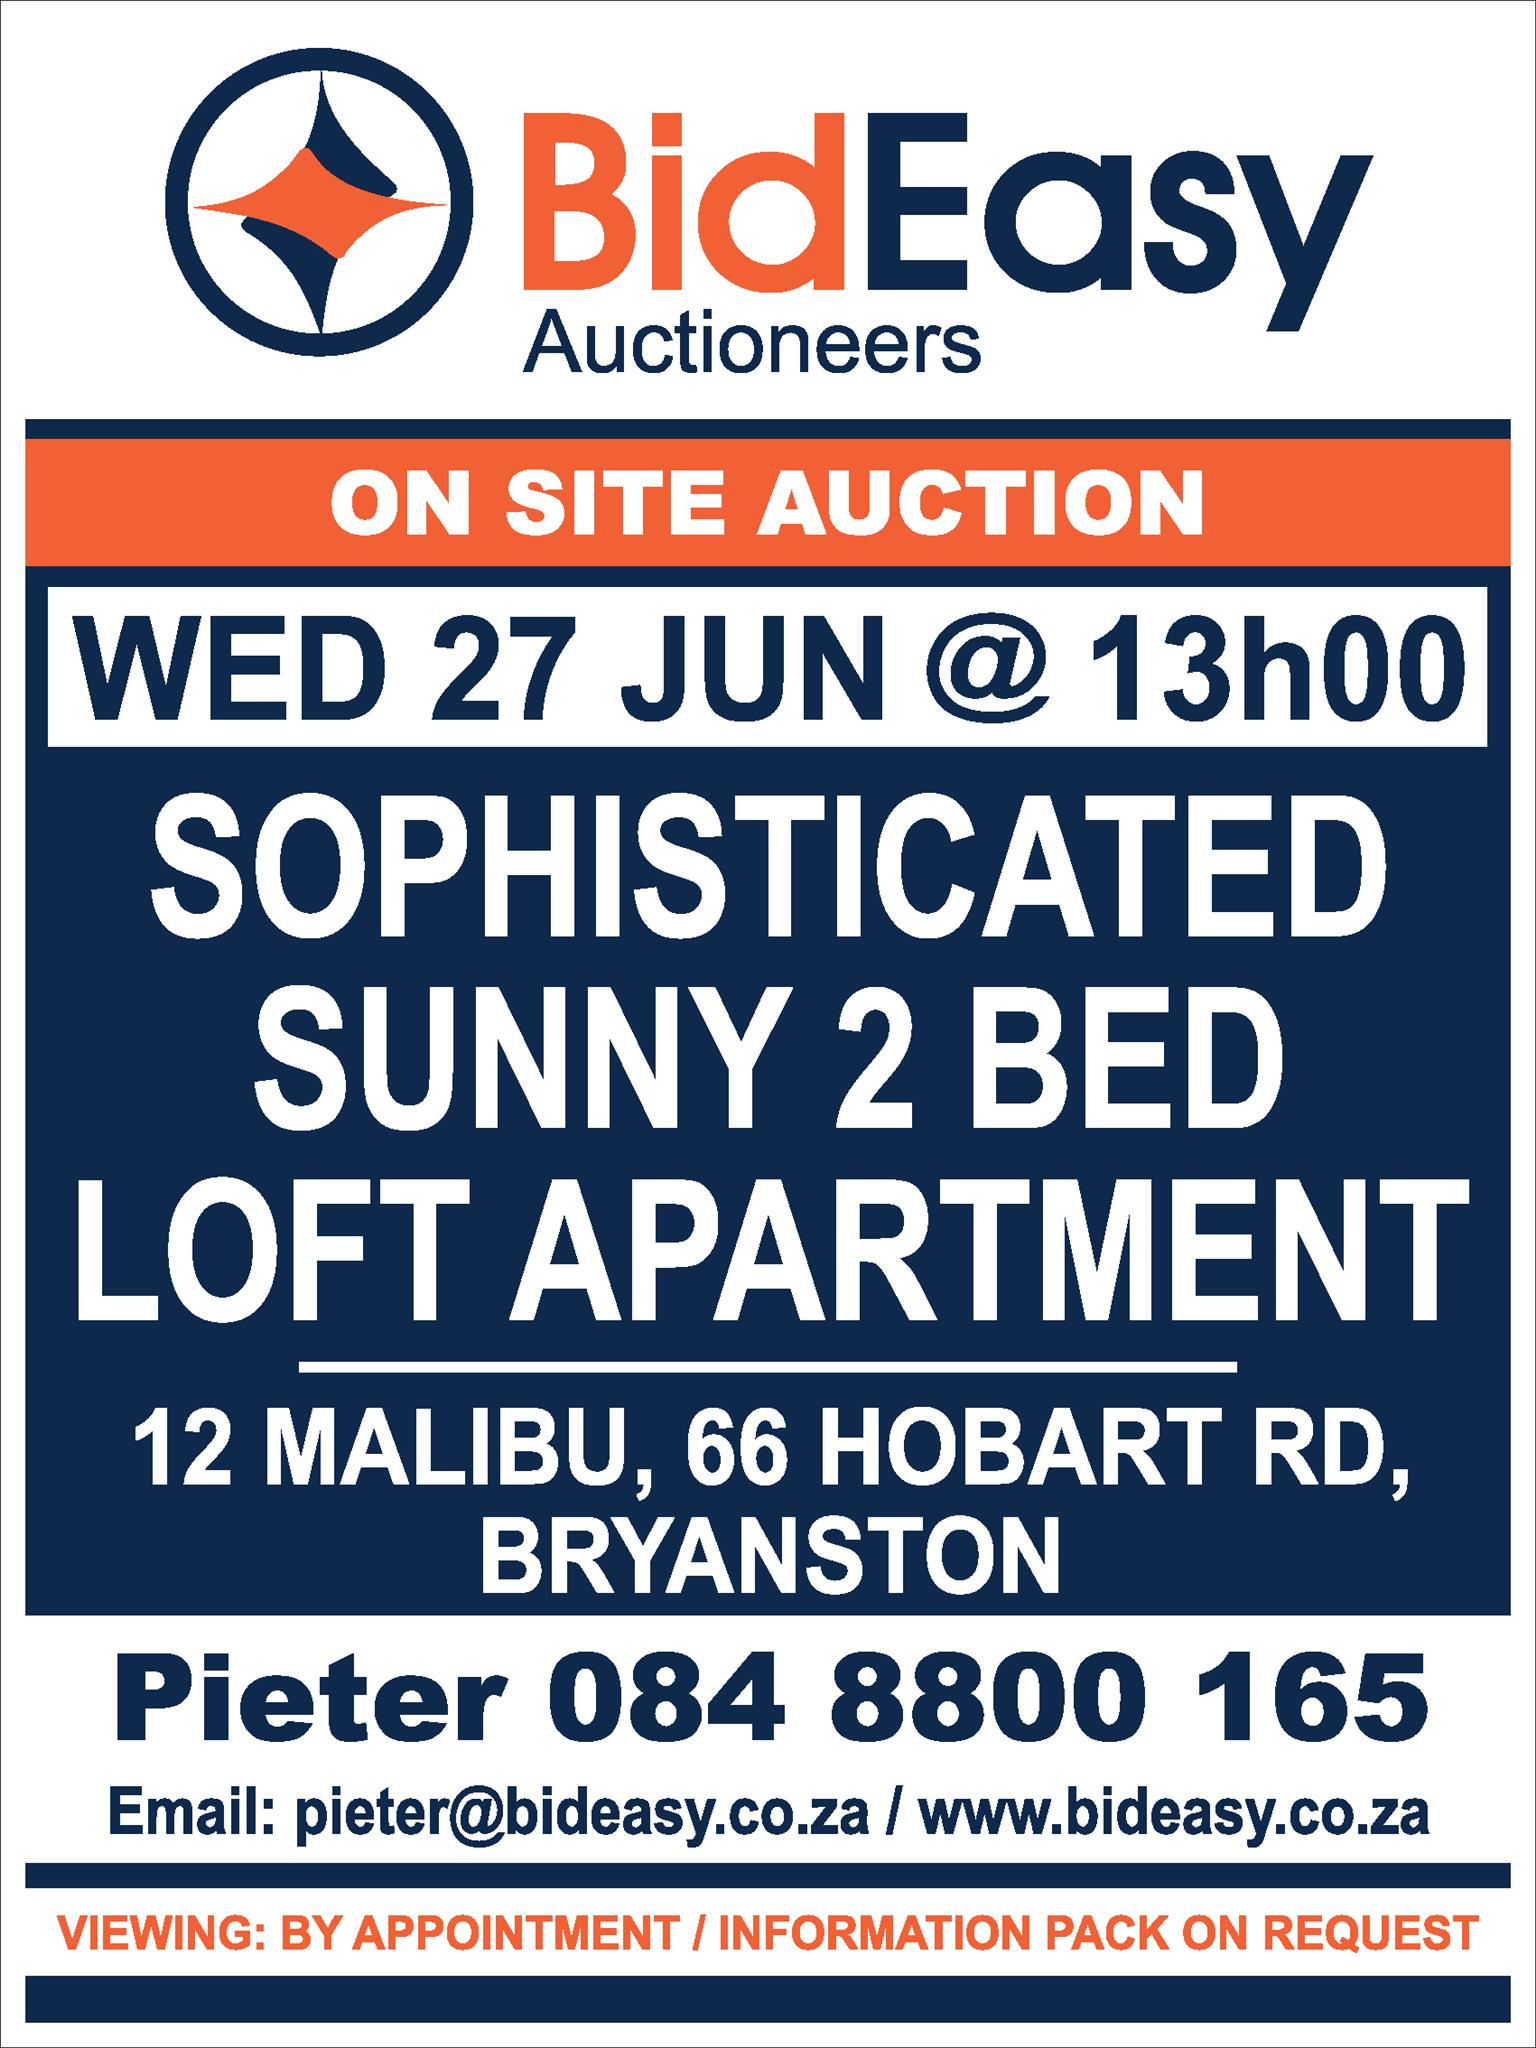 Commercial & residential auctions